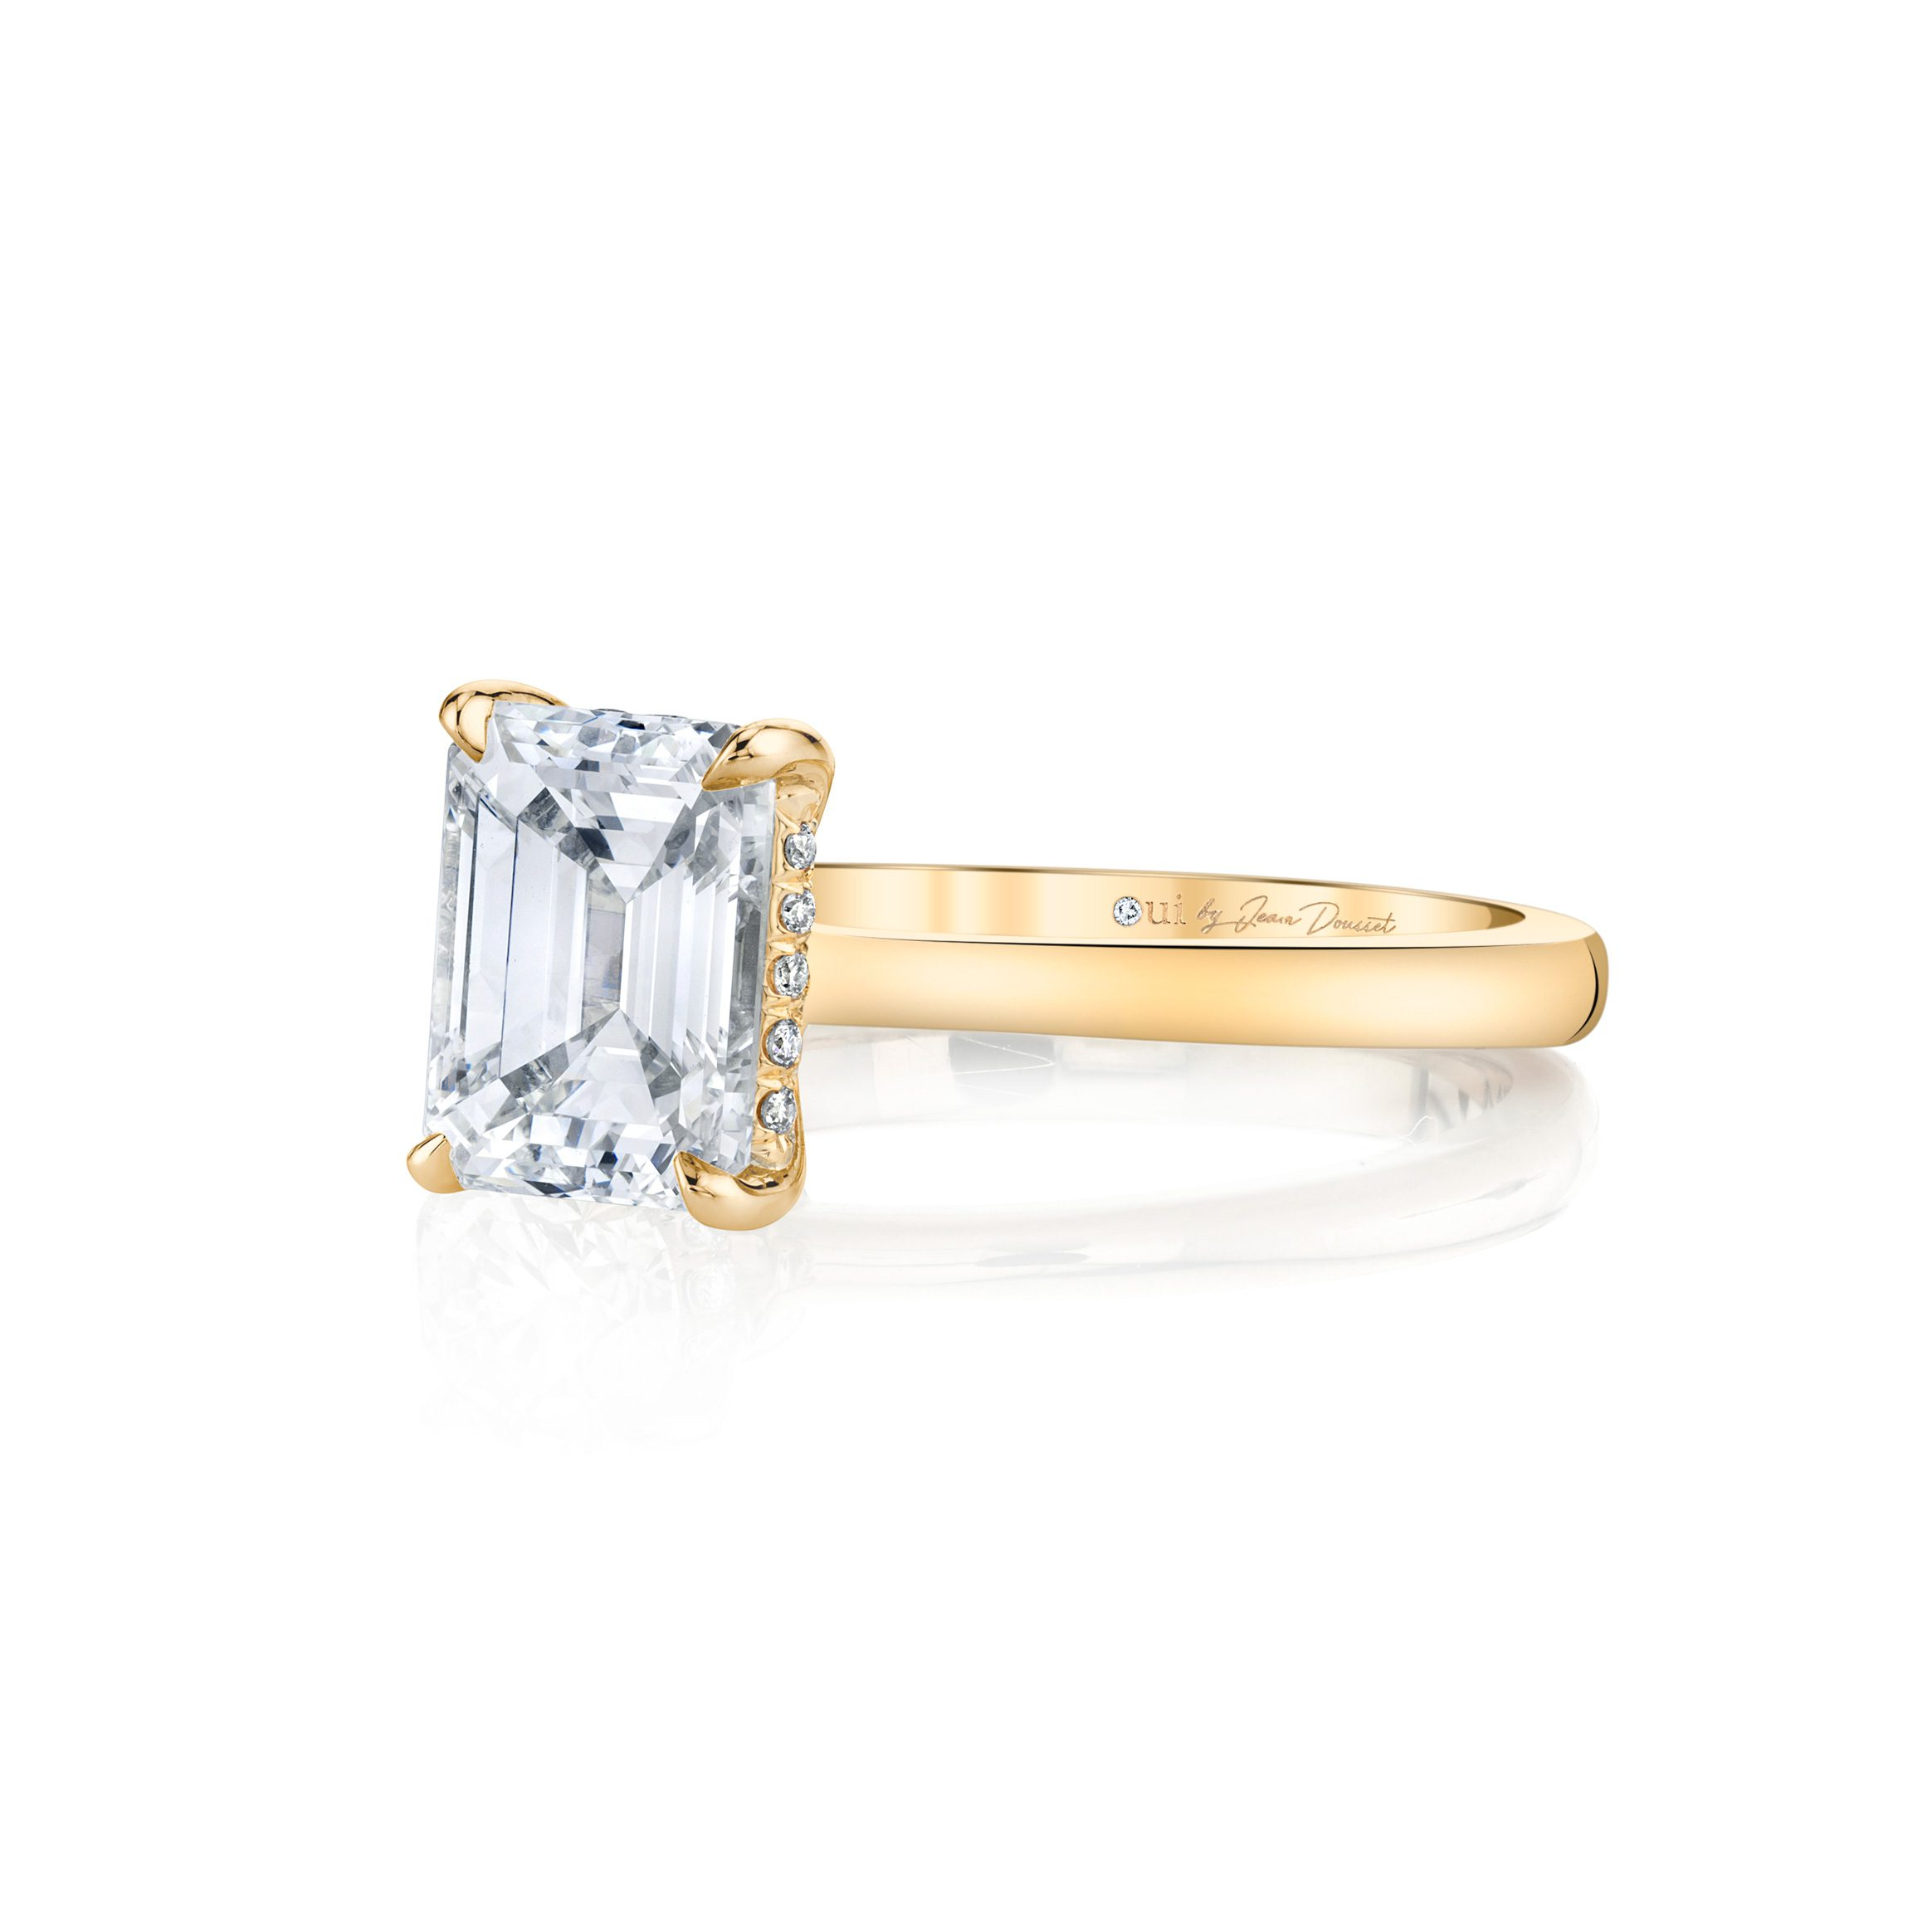 Colette Emerald Solitaire Engagement Ring with a sold band in 18k Yellow Gold Side Shot by Oui by Jean Dousset